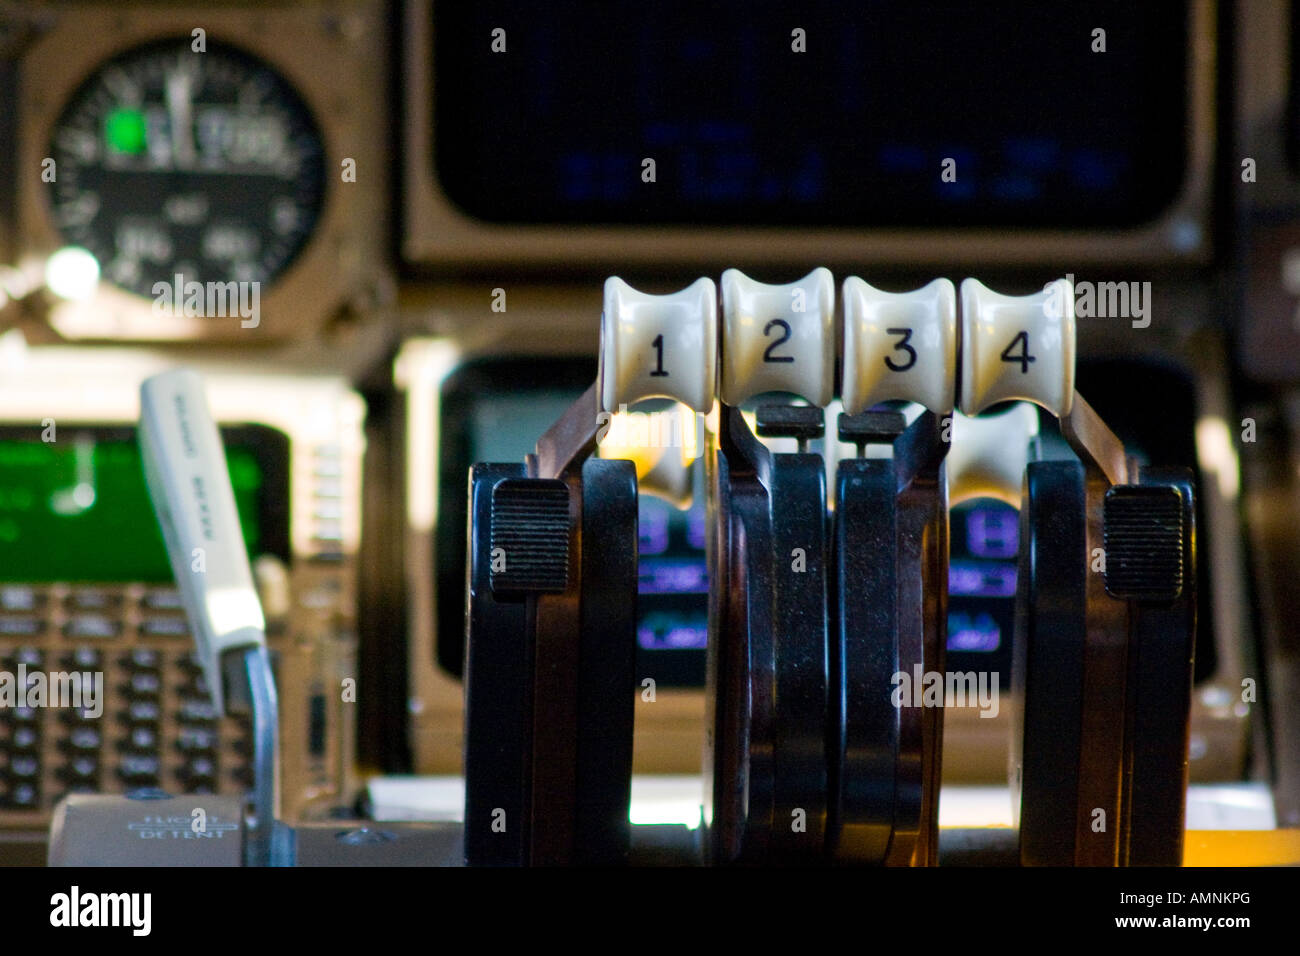 Engine Throttle in the Cockpit of a 747 Boeing Commercial Jet Airplane Stock Photo